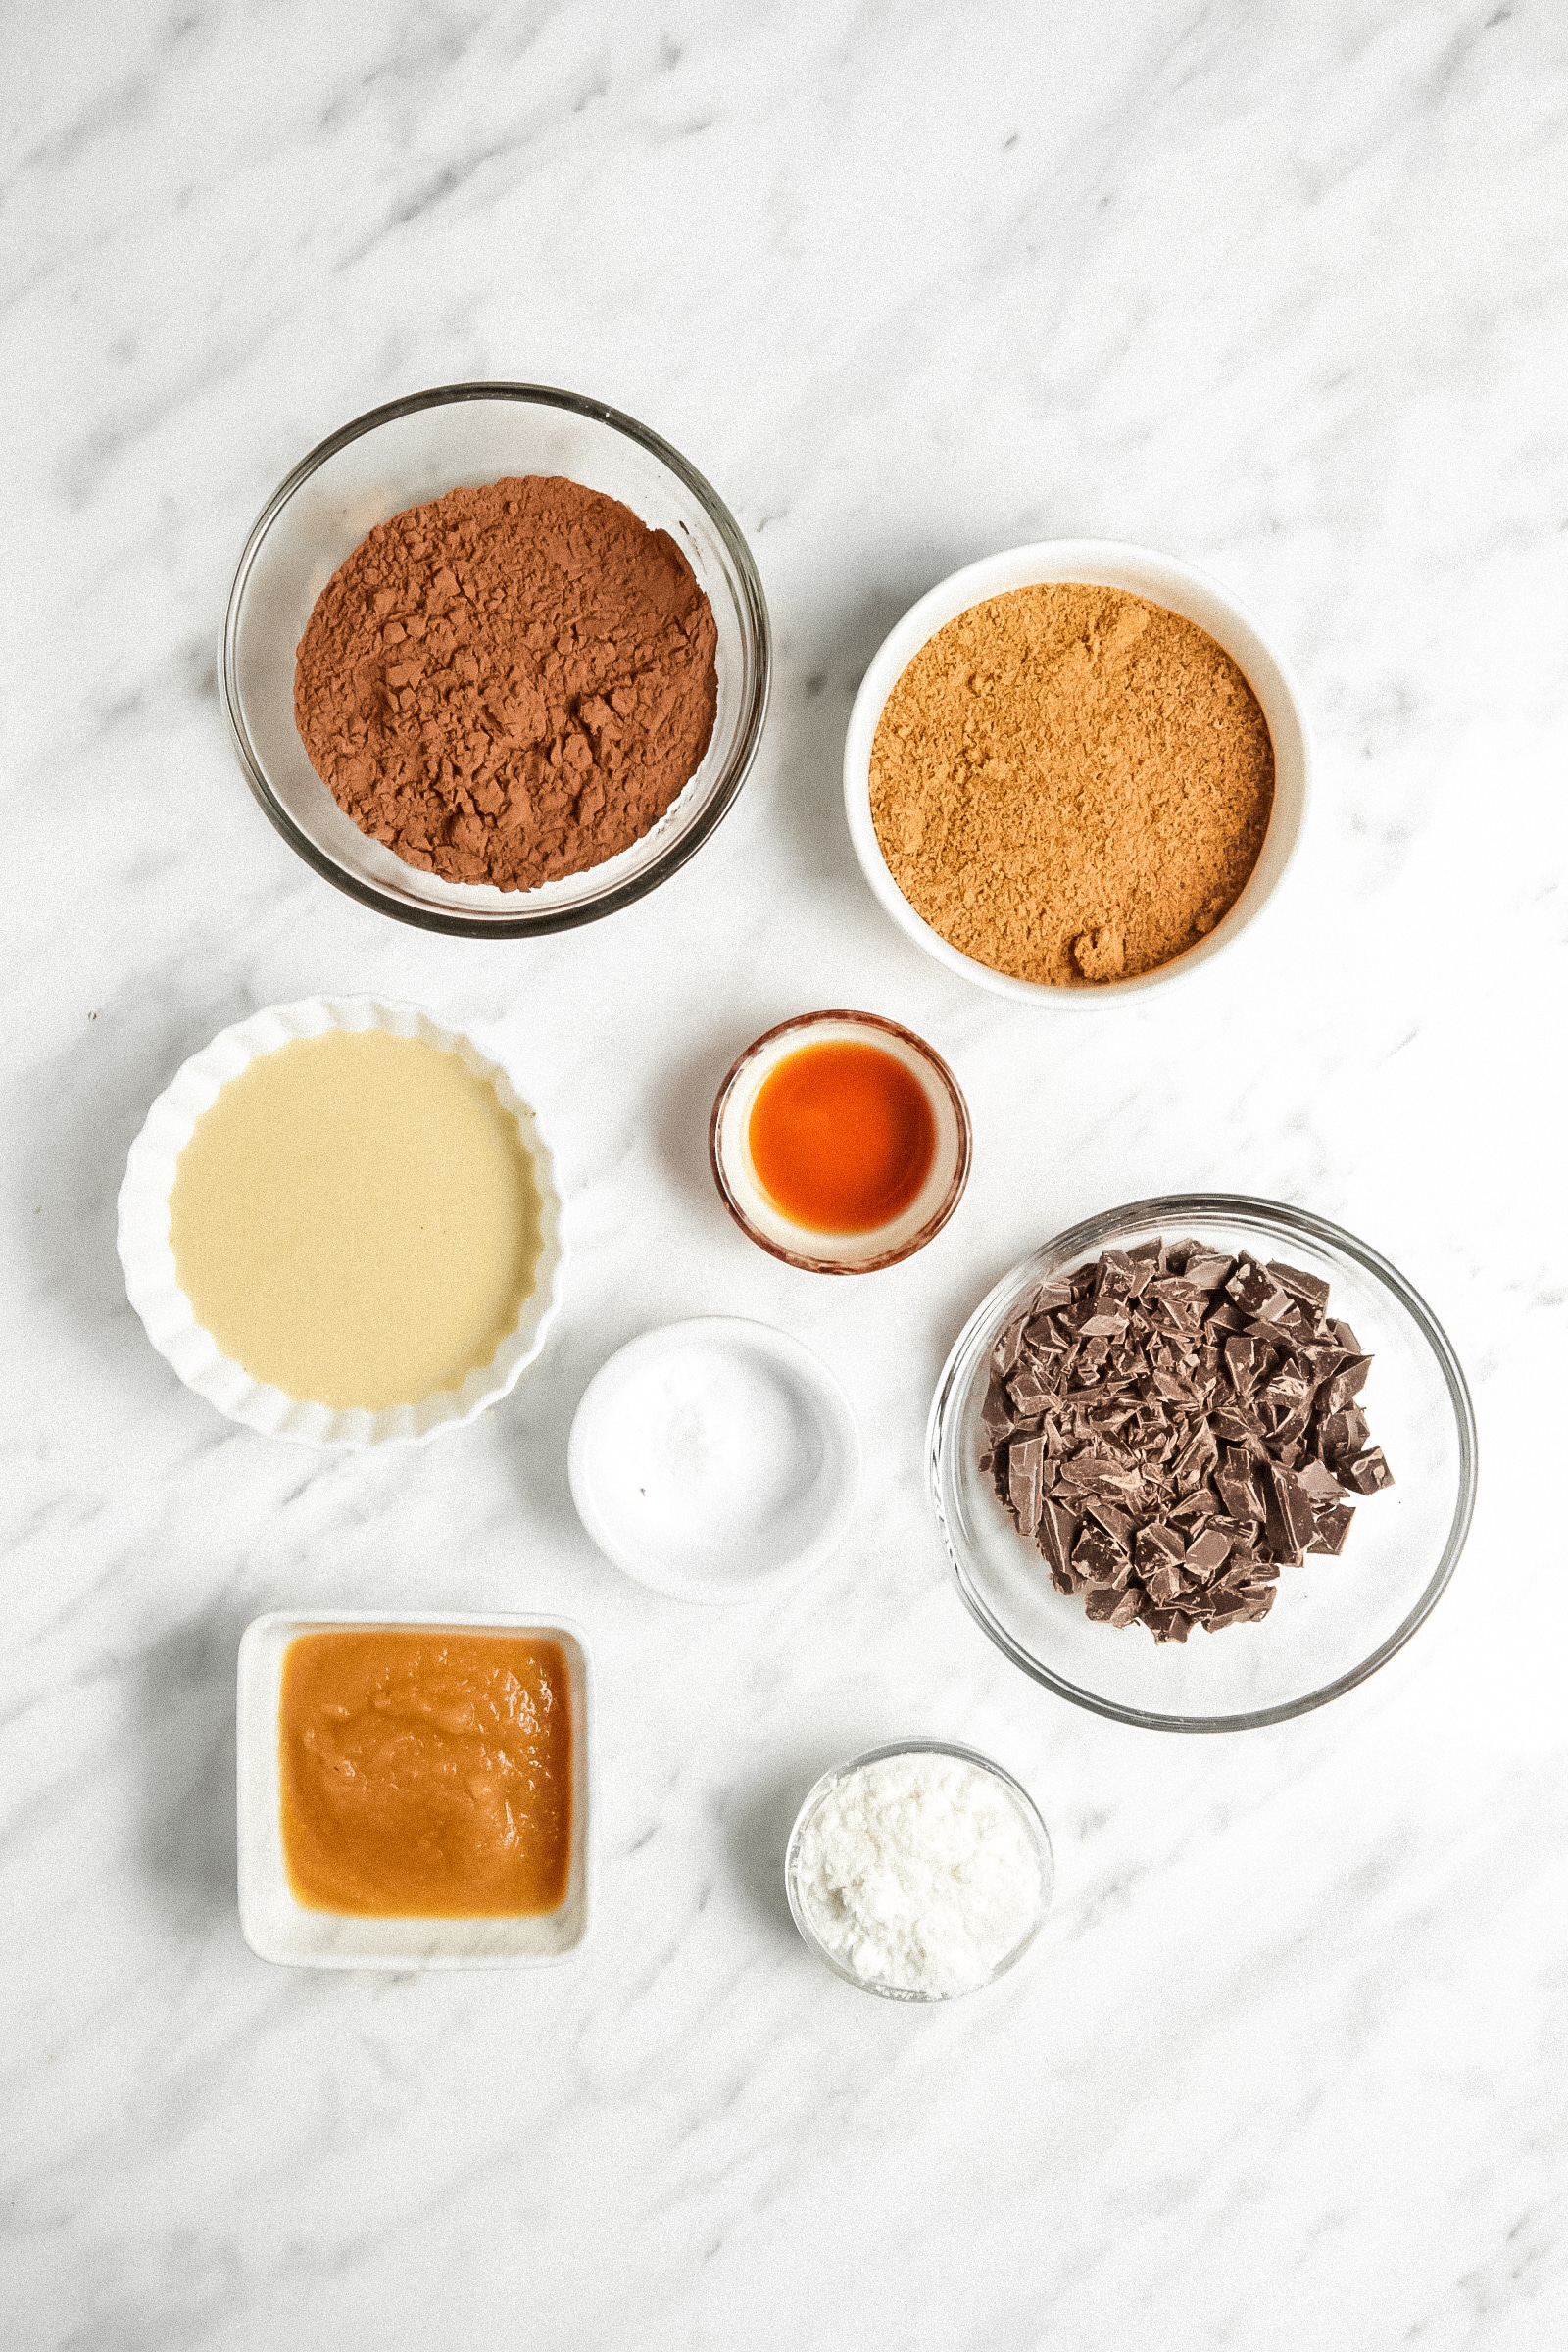 Picture of all 8 ingredients of the brownie cookies in small bowls on a marble counter.